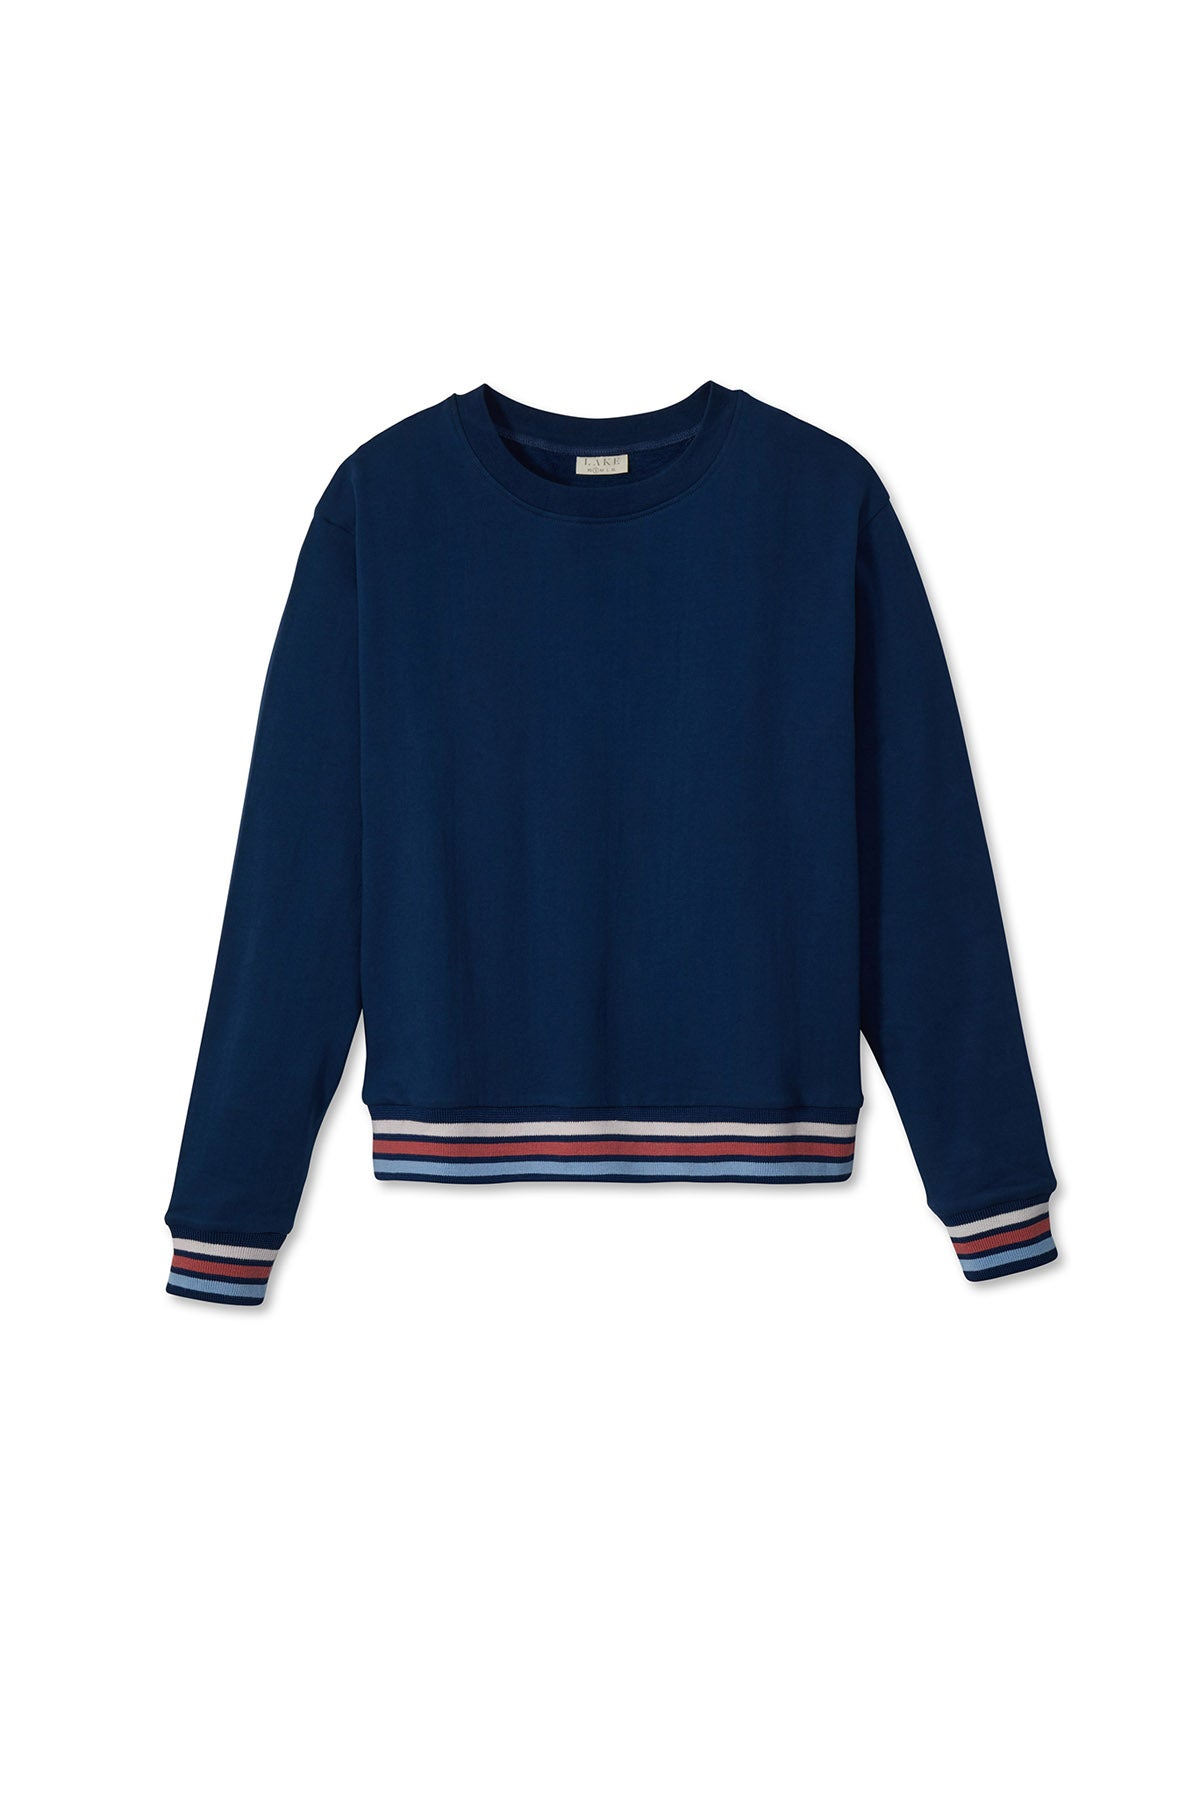 Sweatshirt in Topside